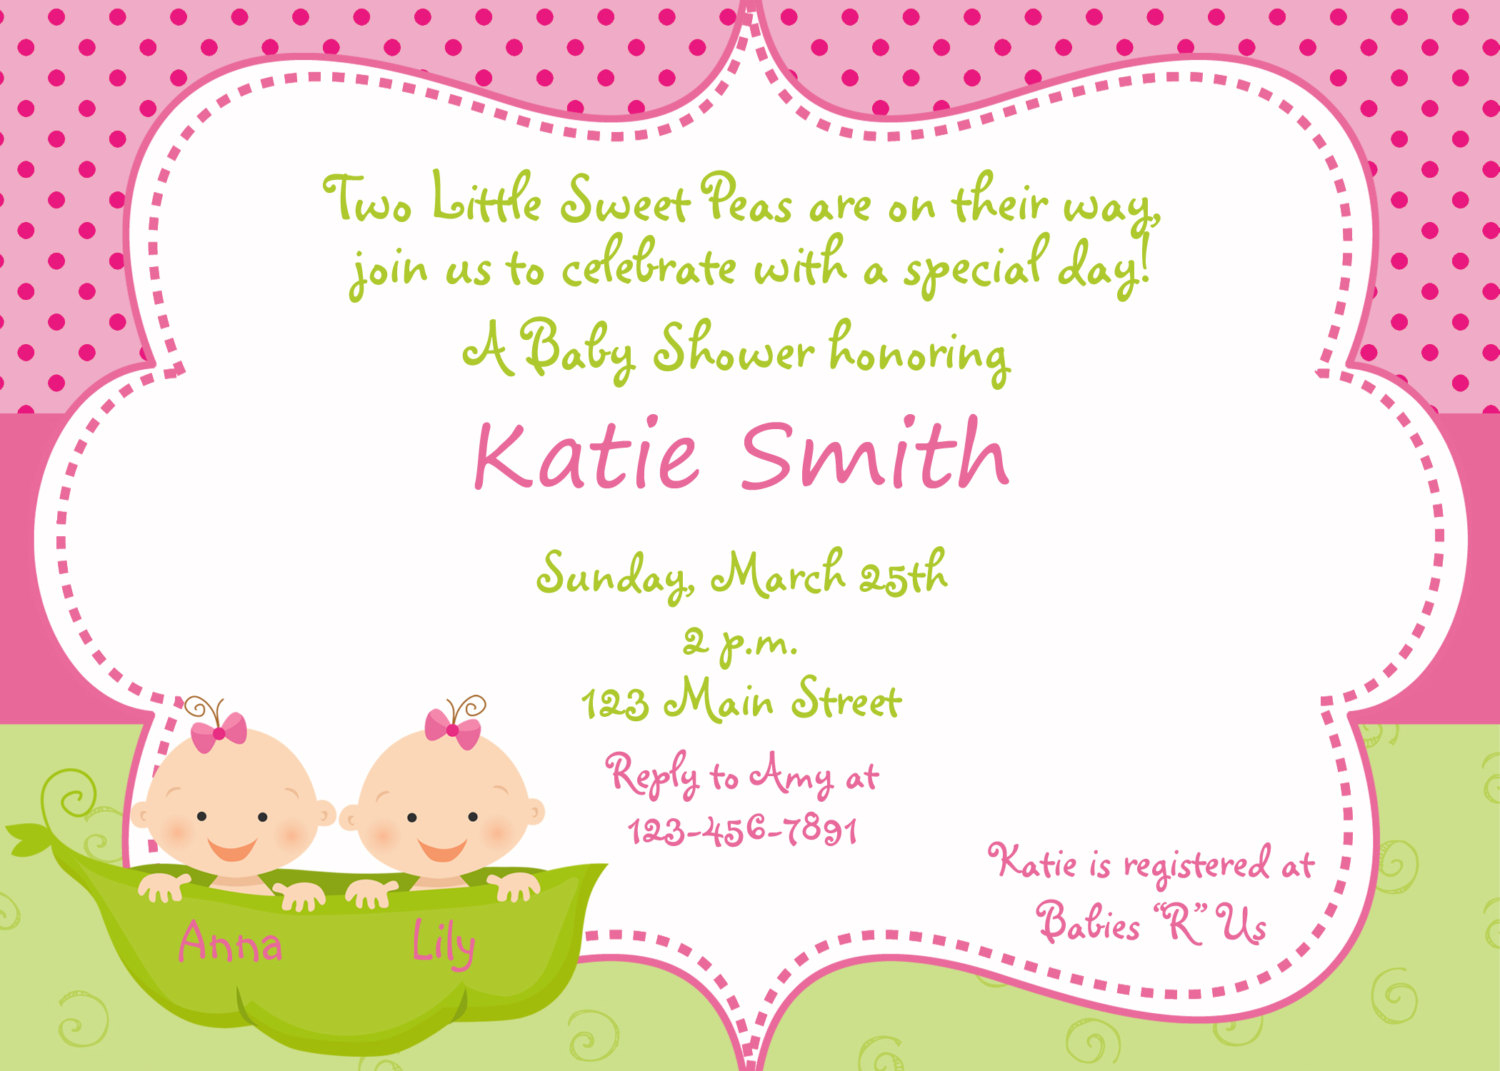 Tips Twins Baby Shower Invitations With Prepossessing Layout The Theme Twin Ba Shower Invitations Free Printables Twins Ba | Silverlininginvitations